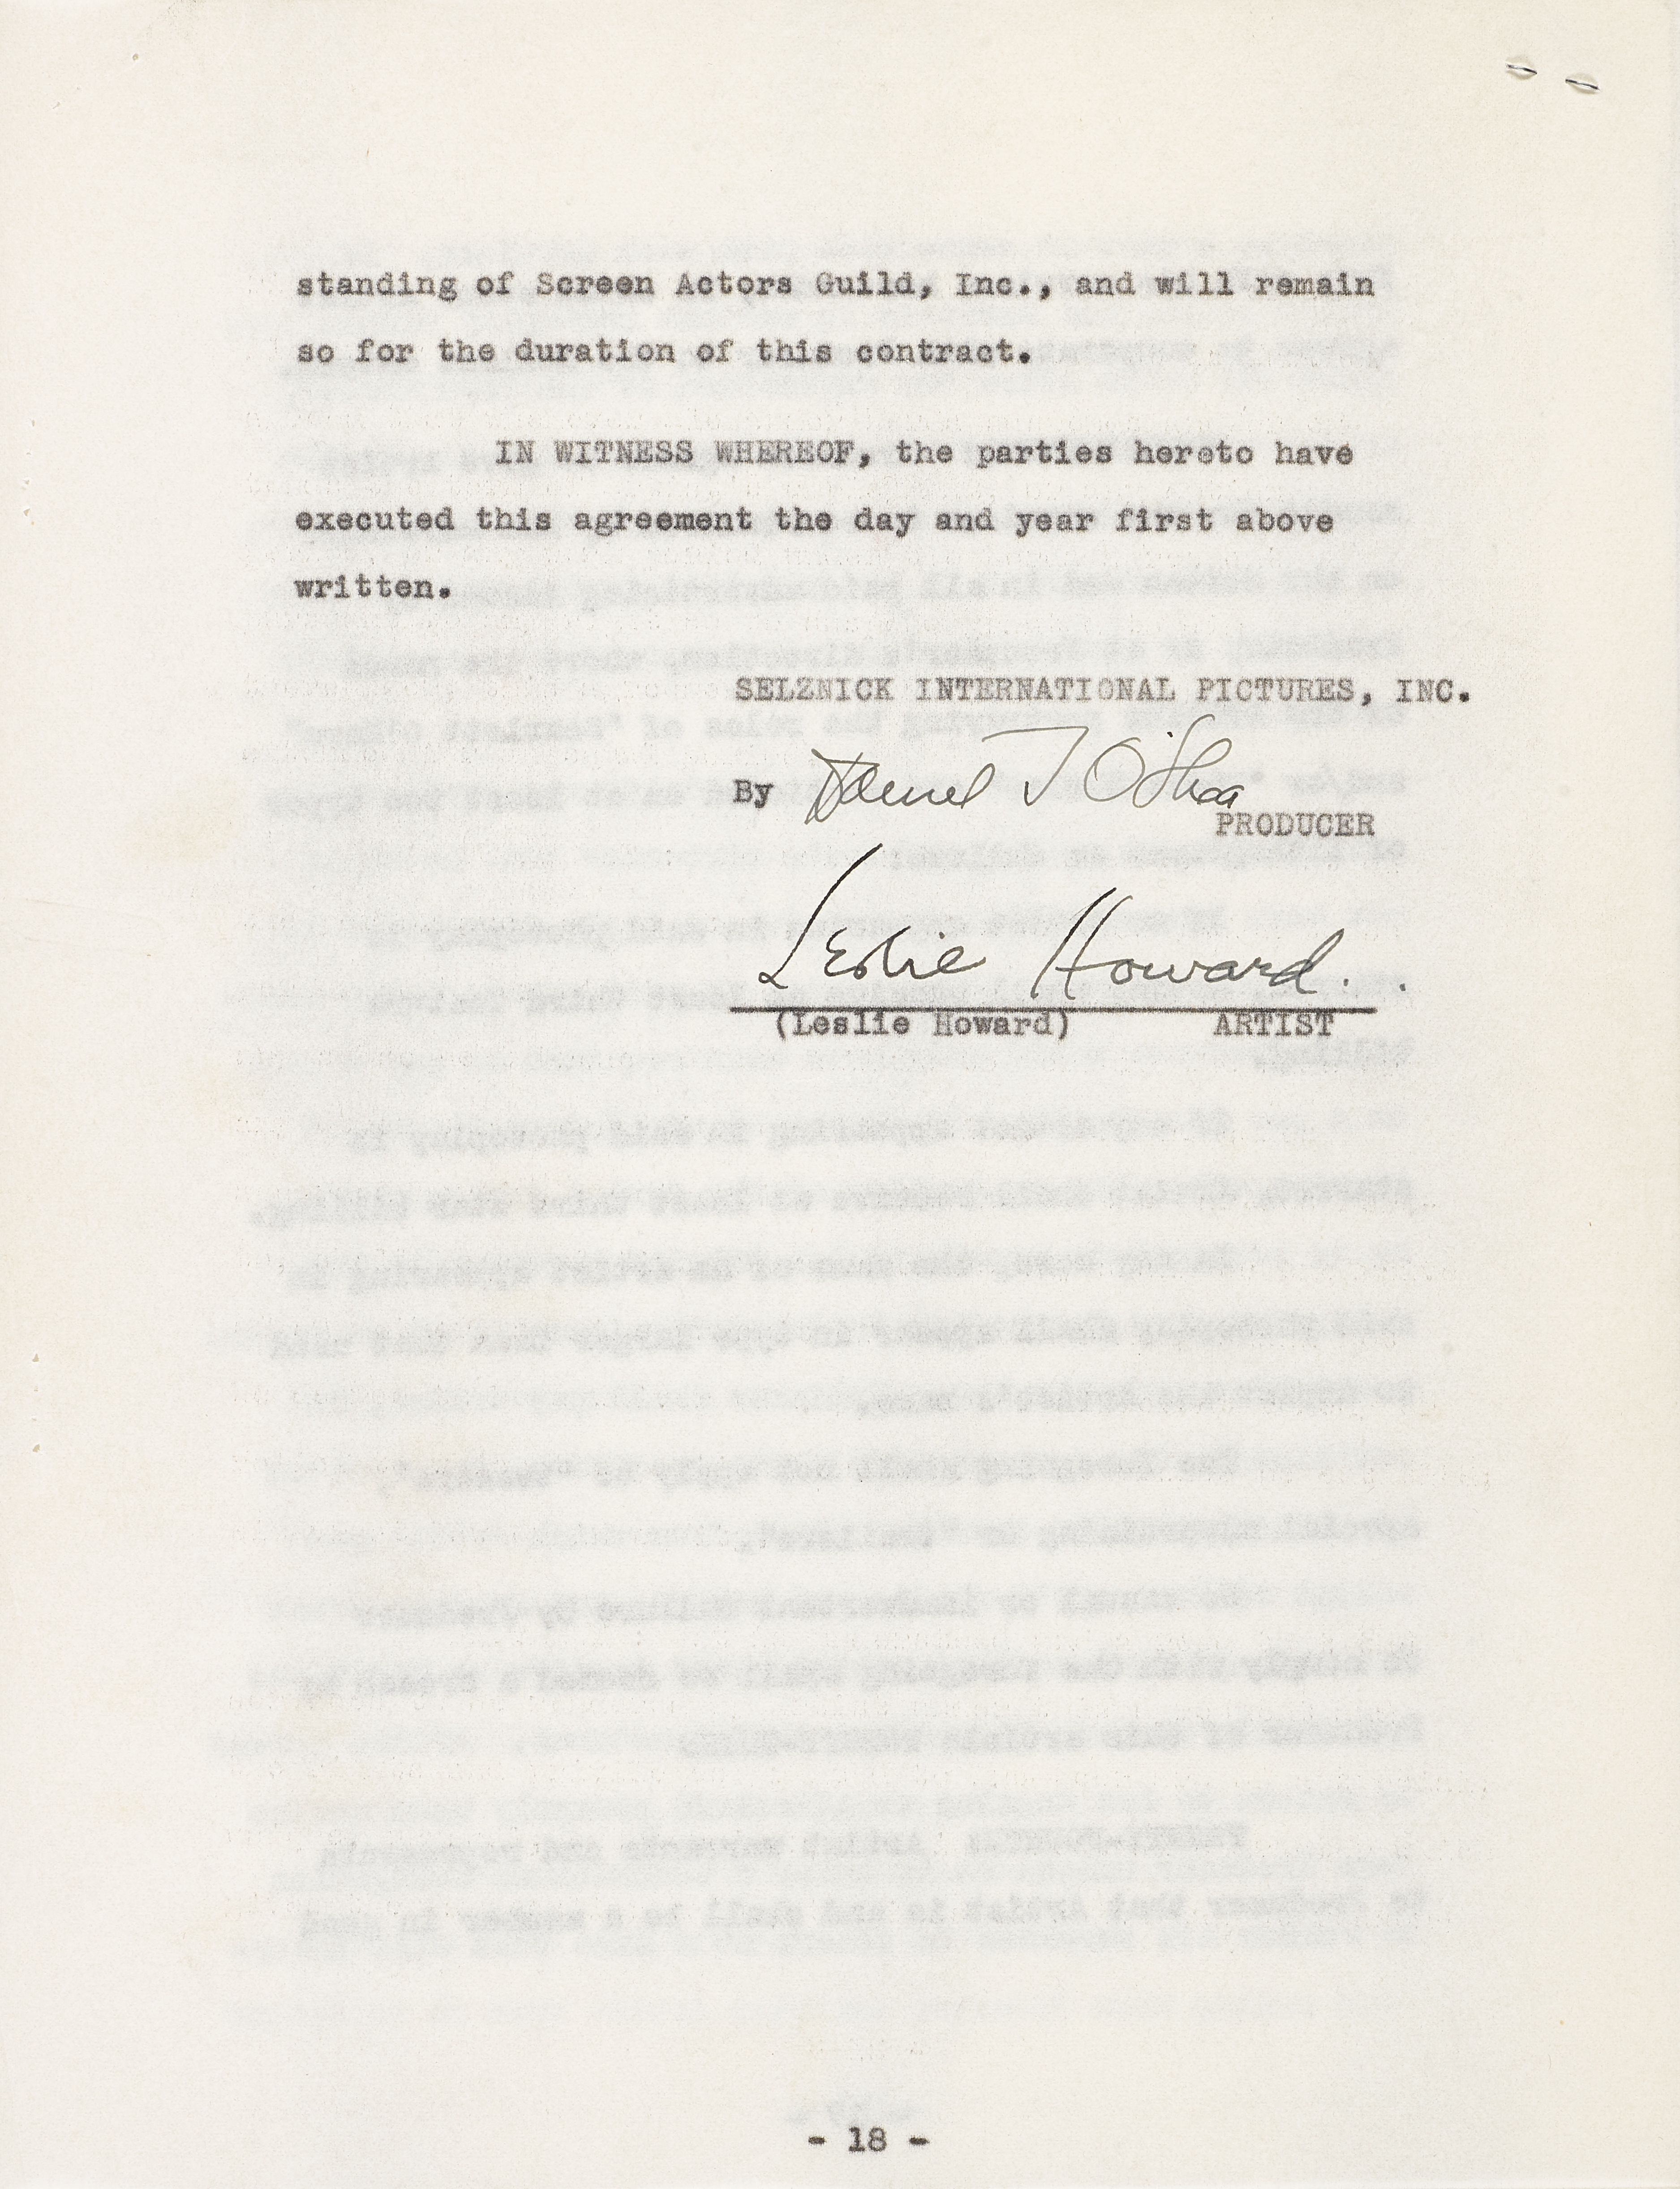 A Leslie Howard signed contract for Gone With the Wind